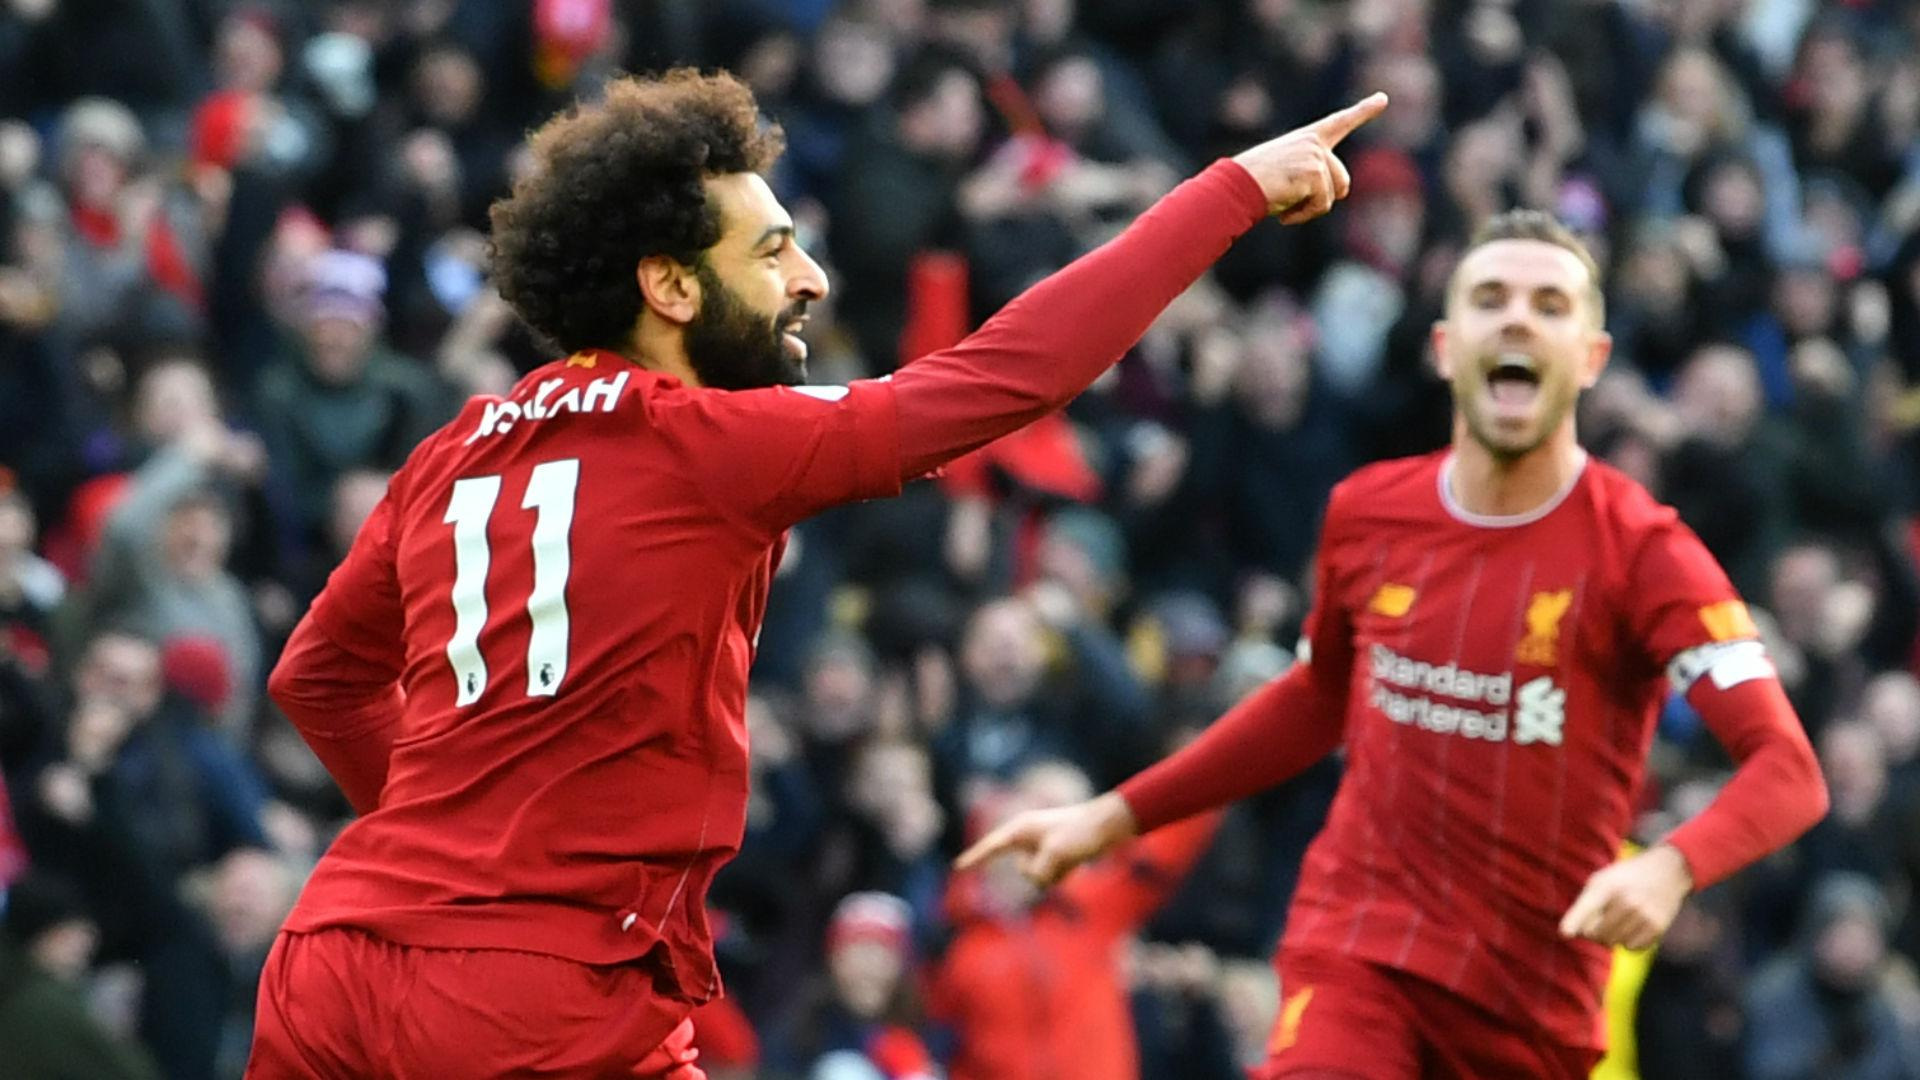 Salah hailed as Messi-esque after another match-winning performance for Liverpool